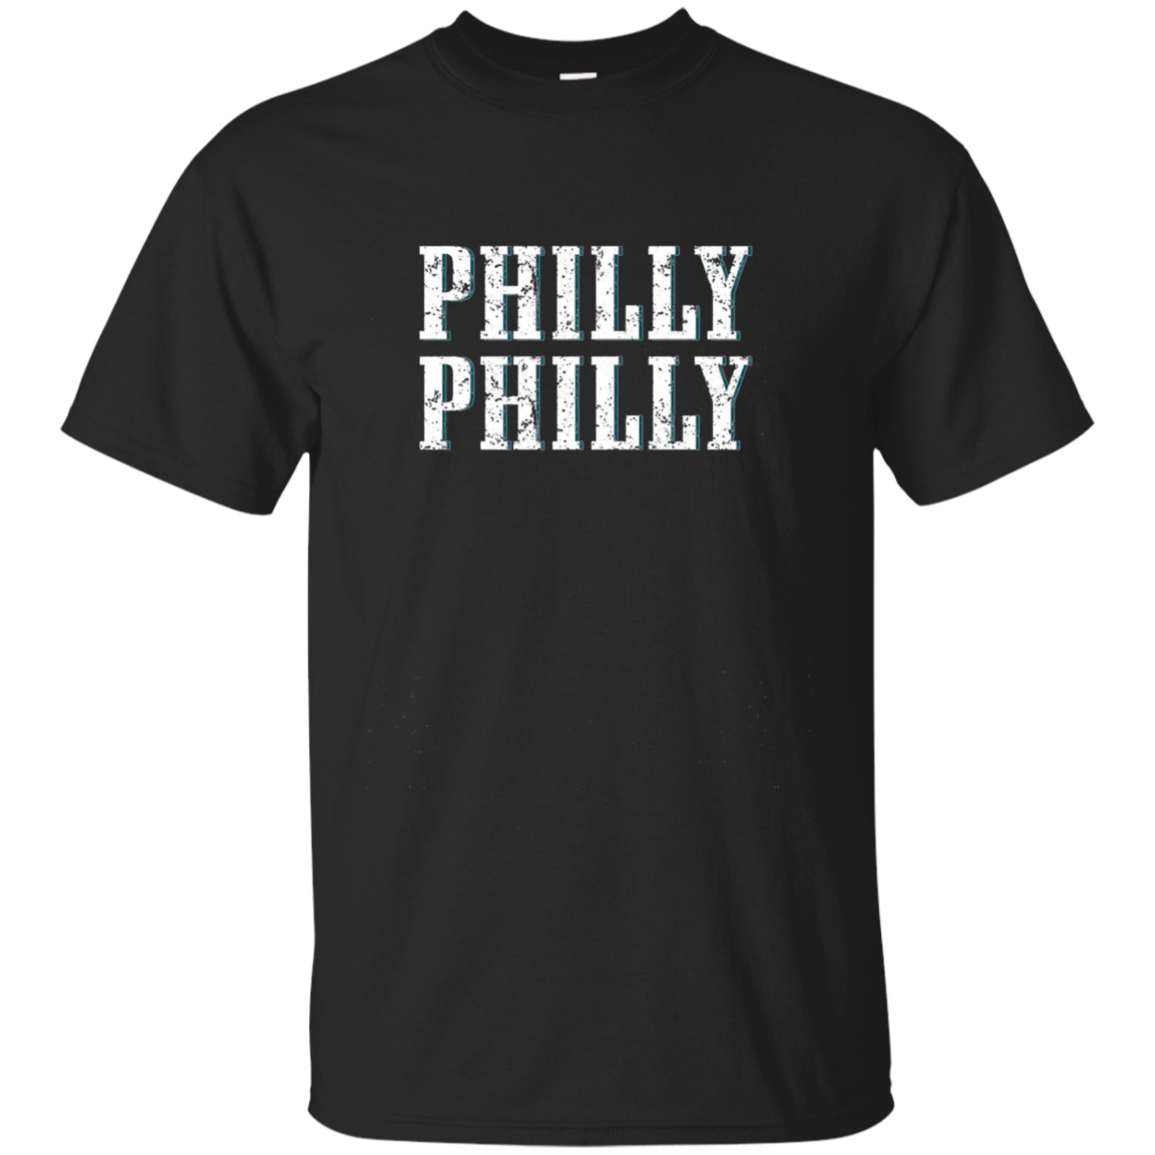 Philly Philly Shirt - Long Sleeve Vintage Look Tee